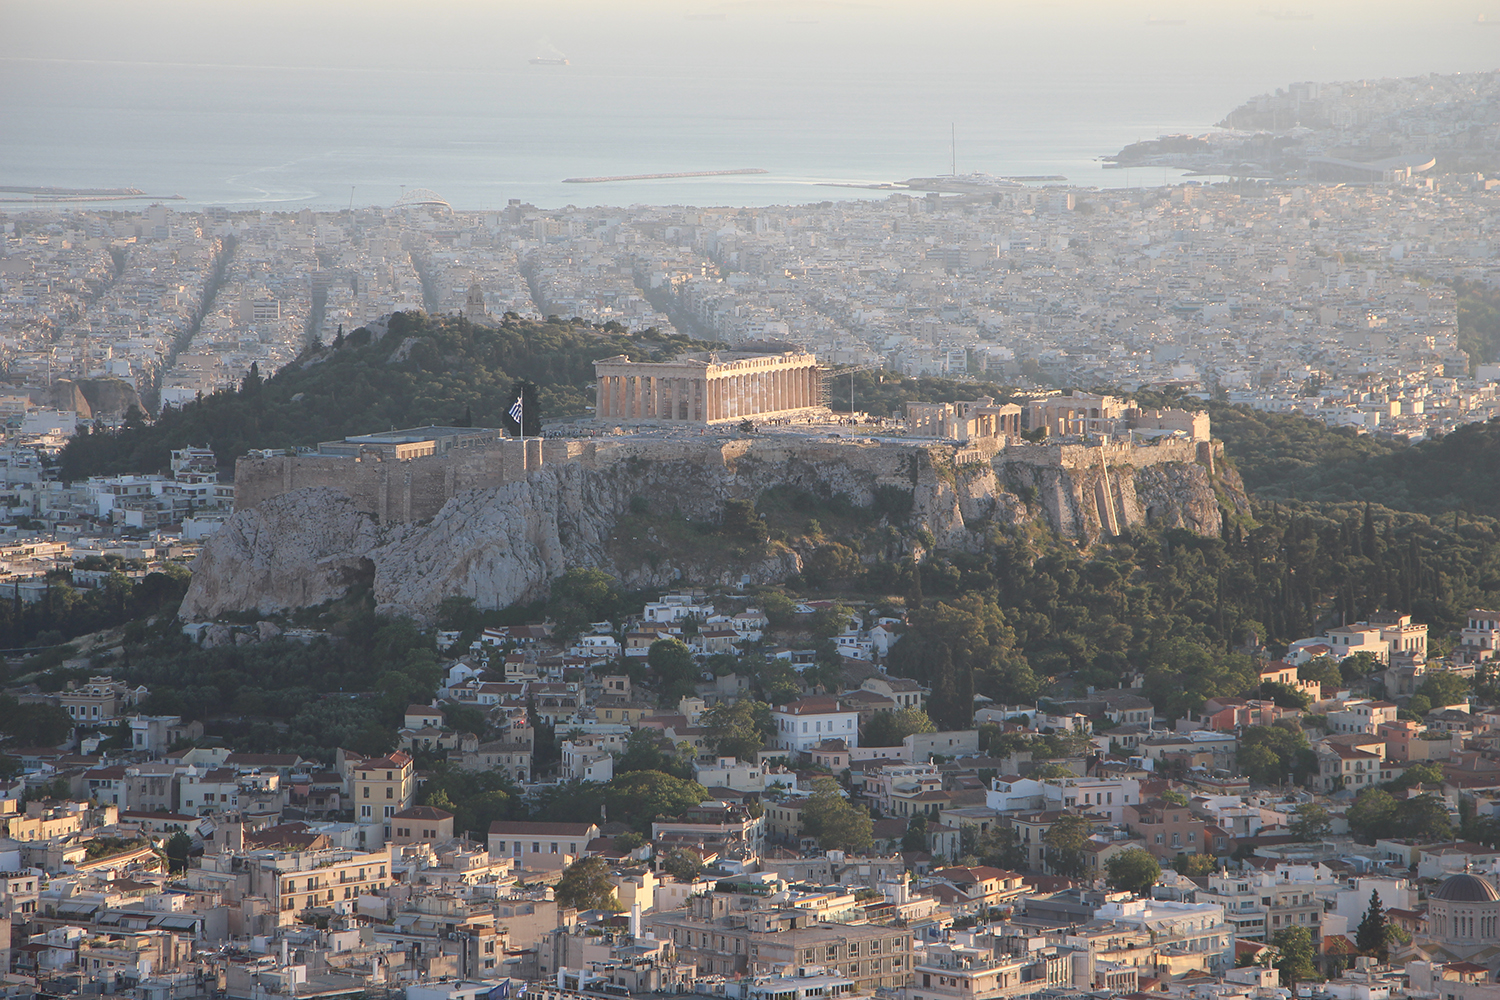 view of acropolis from mount lycabettus